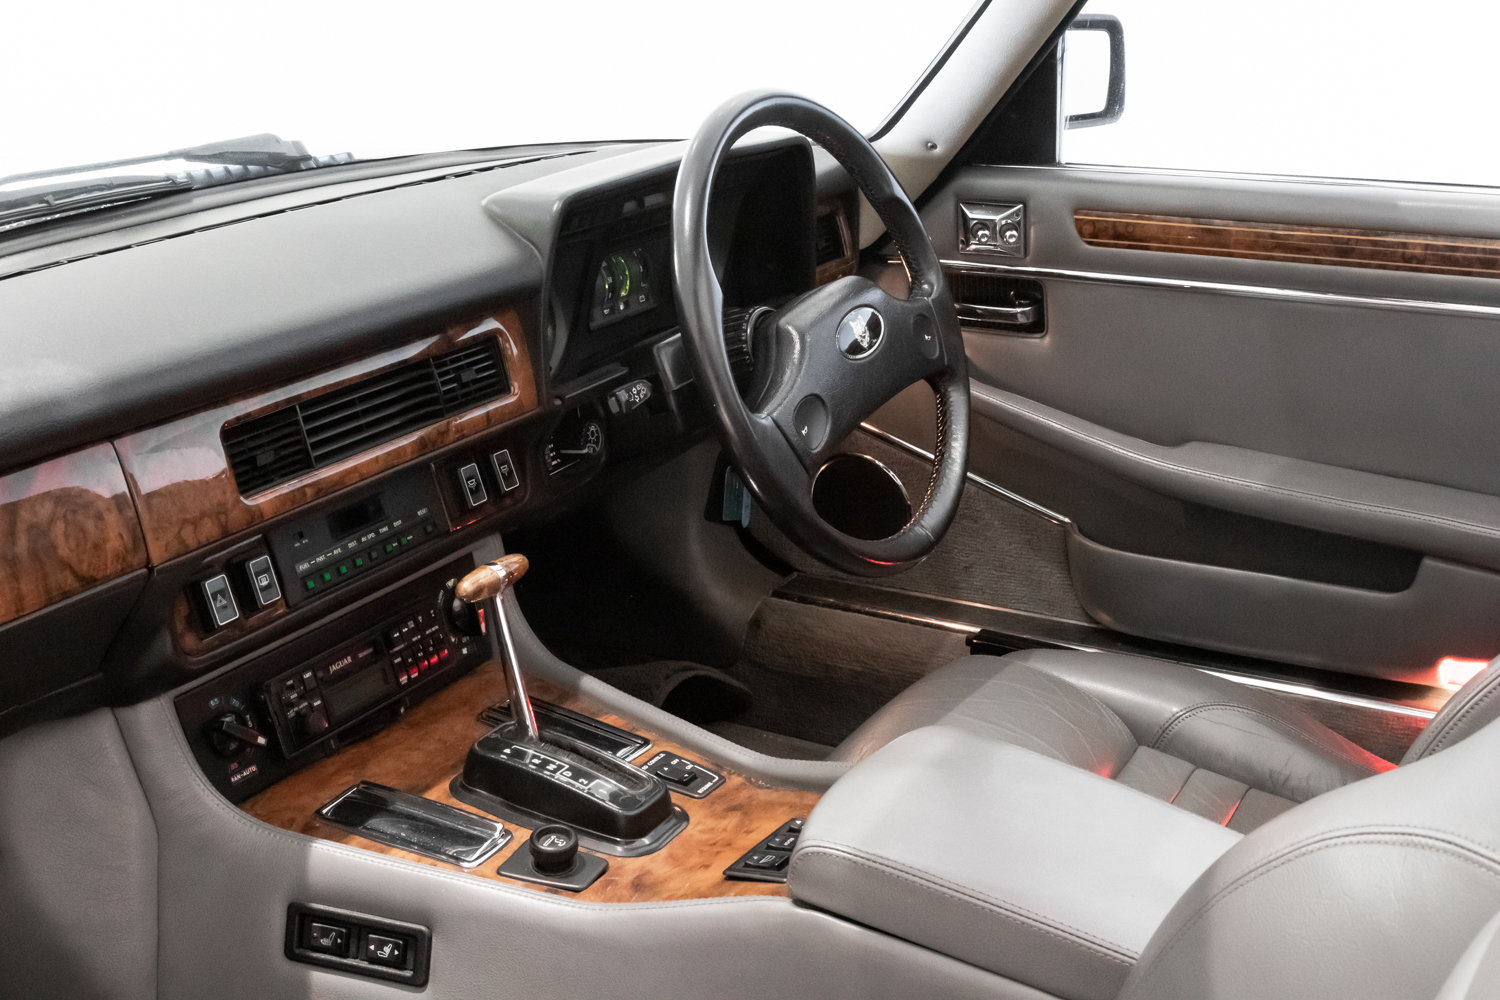 1989 Outstanding Condition Jaguar XJS V12 Convertible Automatic  For Sale (picture 5 of 6)